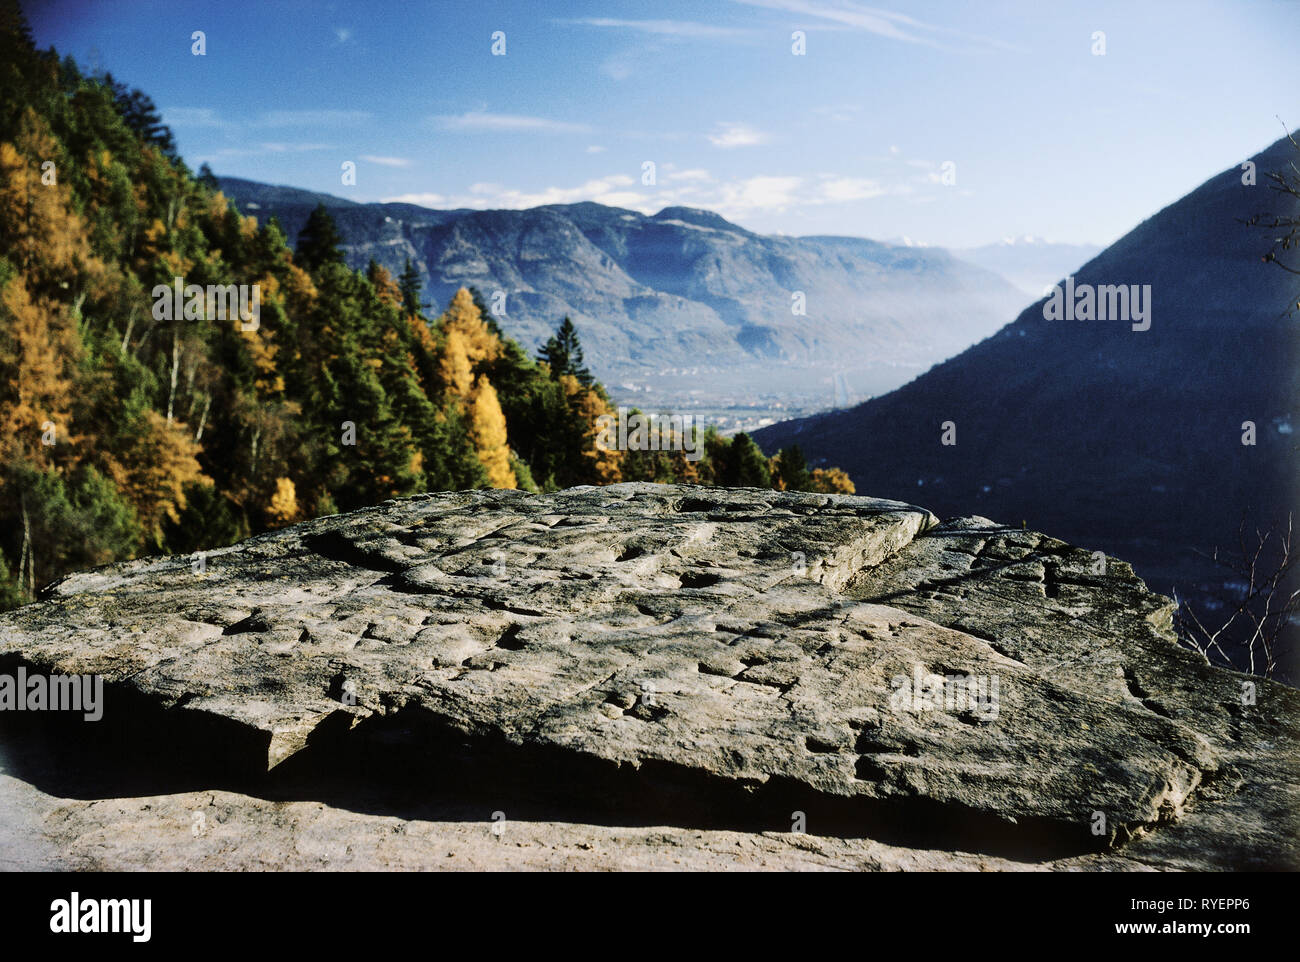 prehistory, architecture, South Tyrol, prehistorical cult stone, cup-marked stone, near Plars, Adige Valley, Additional-Rights-Clearance-Info-Not-Available - Stock Image